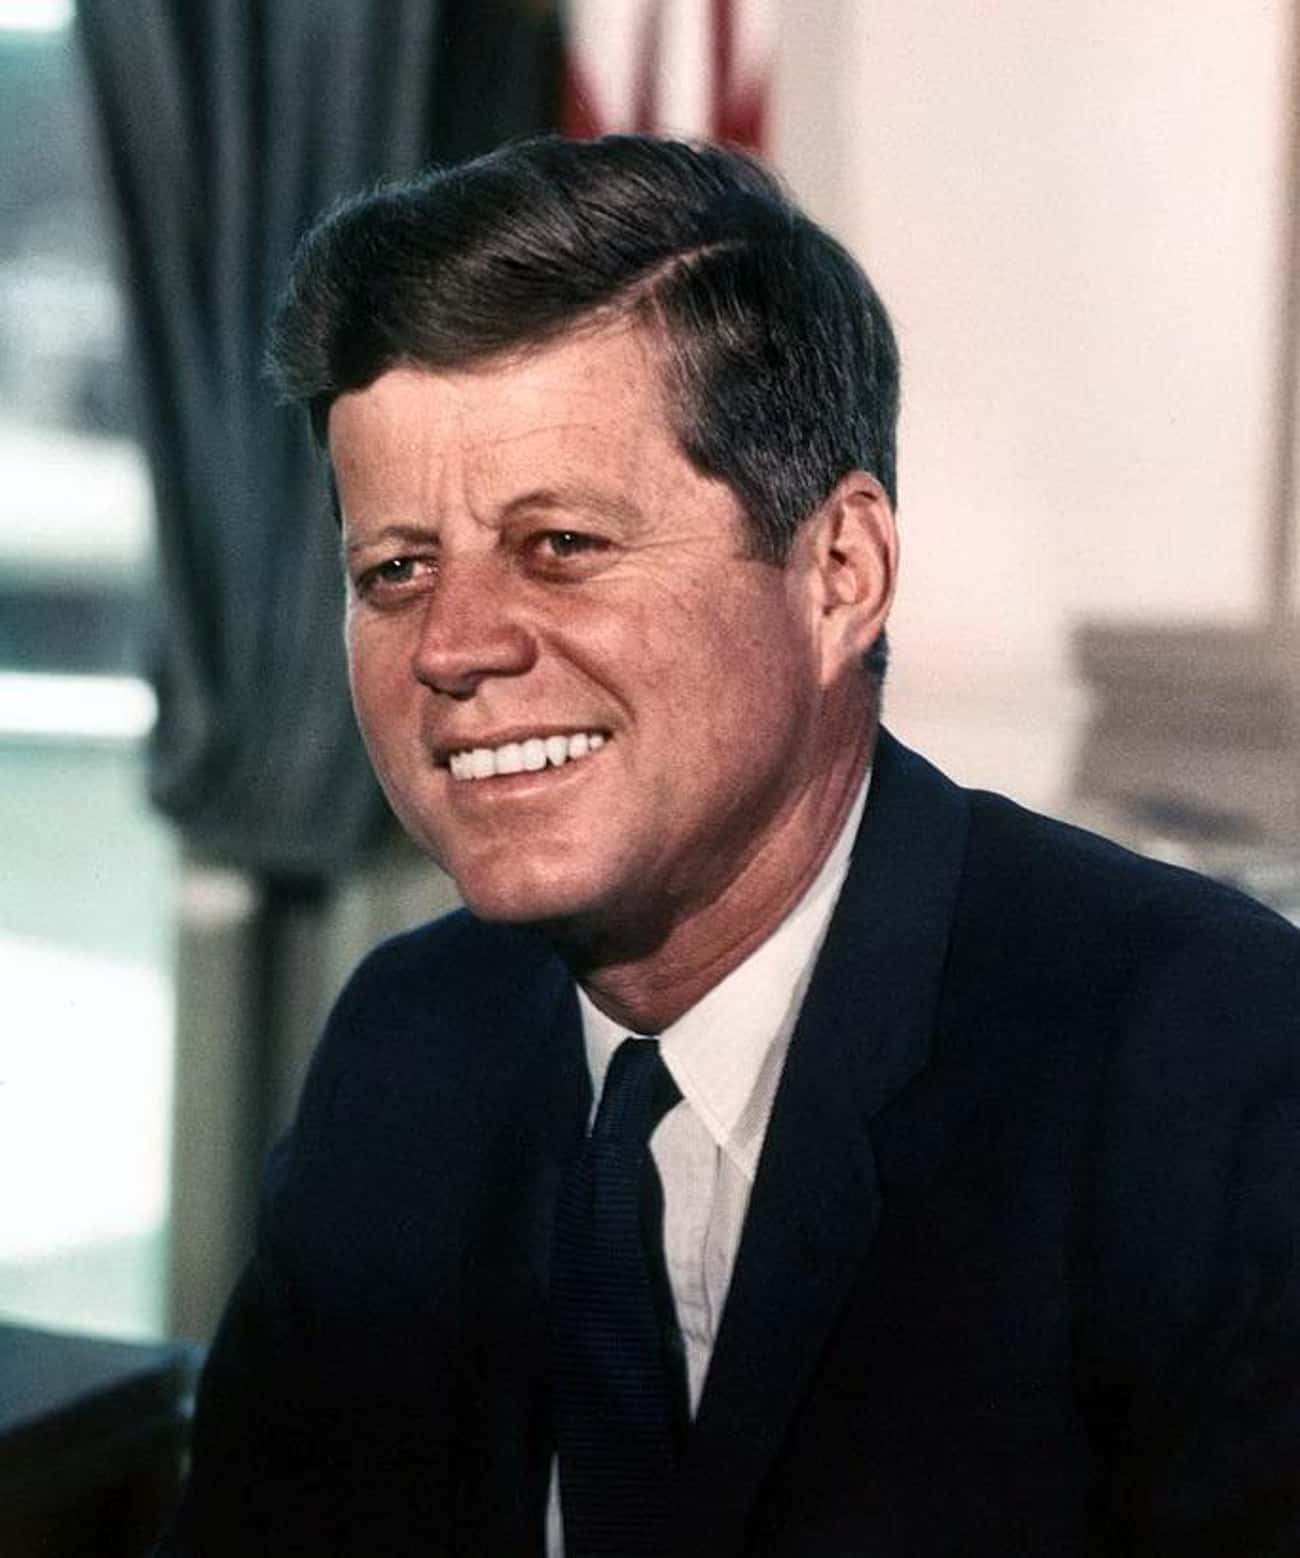 John F. Kennedy is listed (or ranked) 2 on the list Which Ex-Presidents Would You Want to Go on a Bender With?